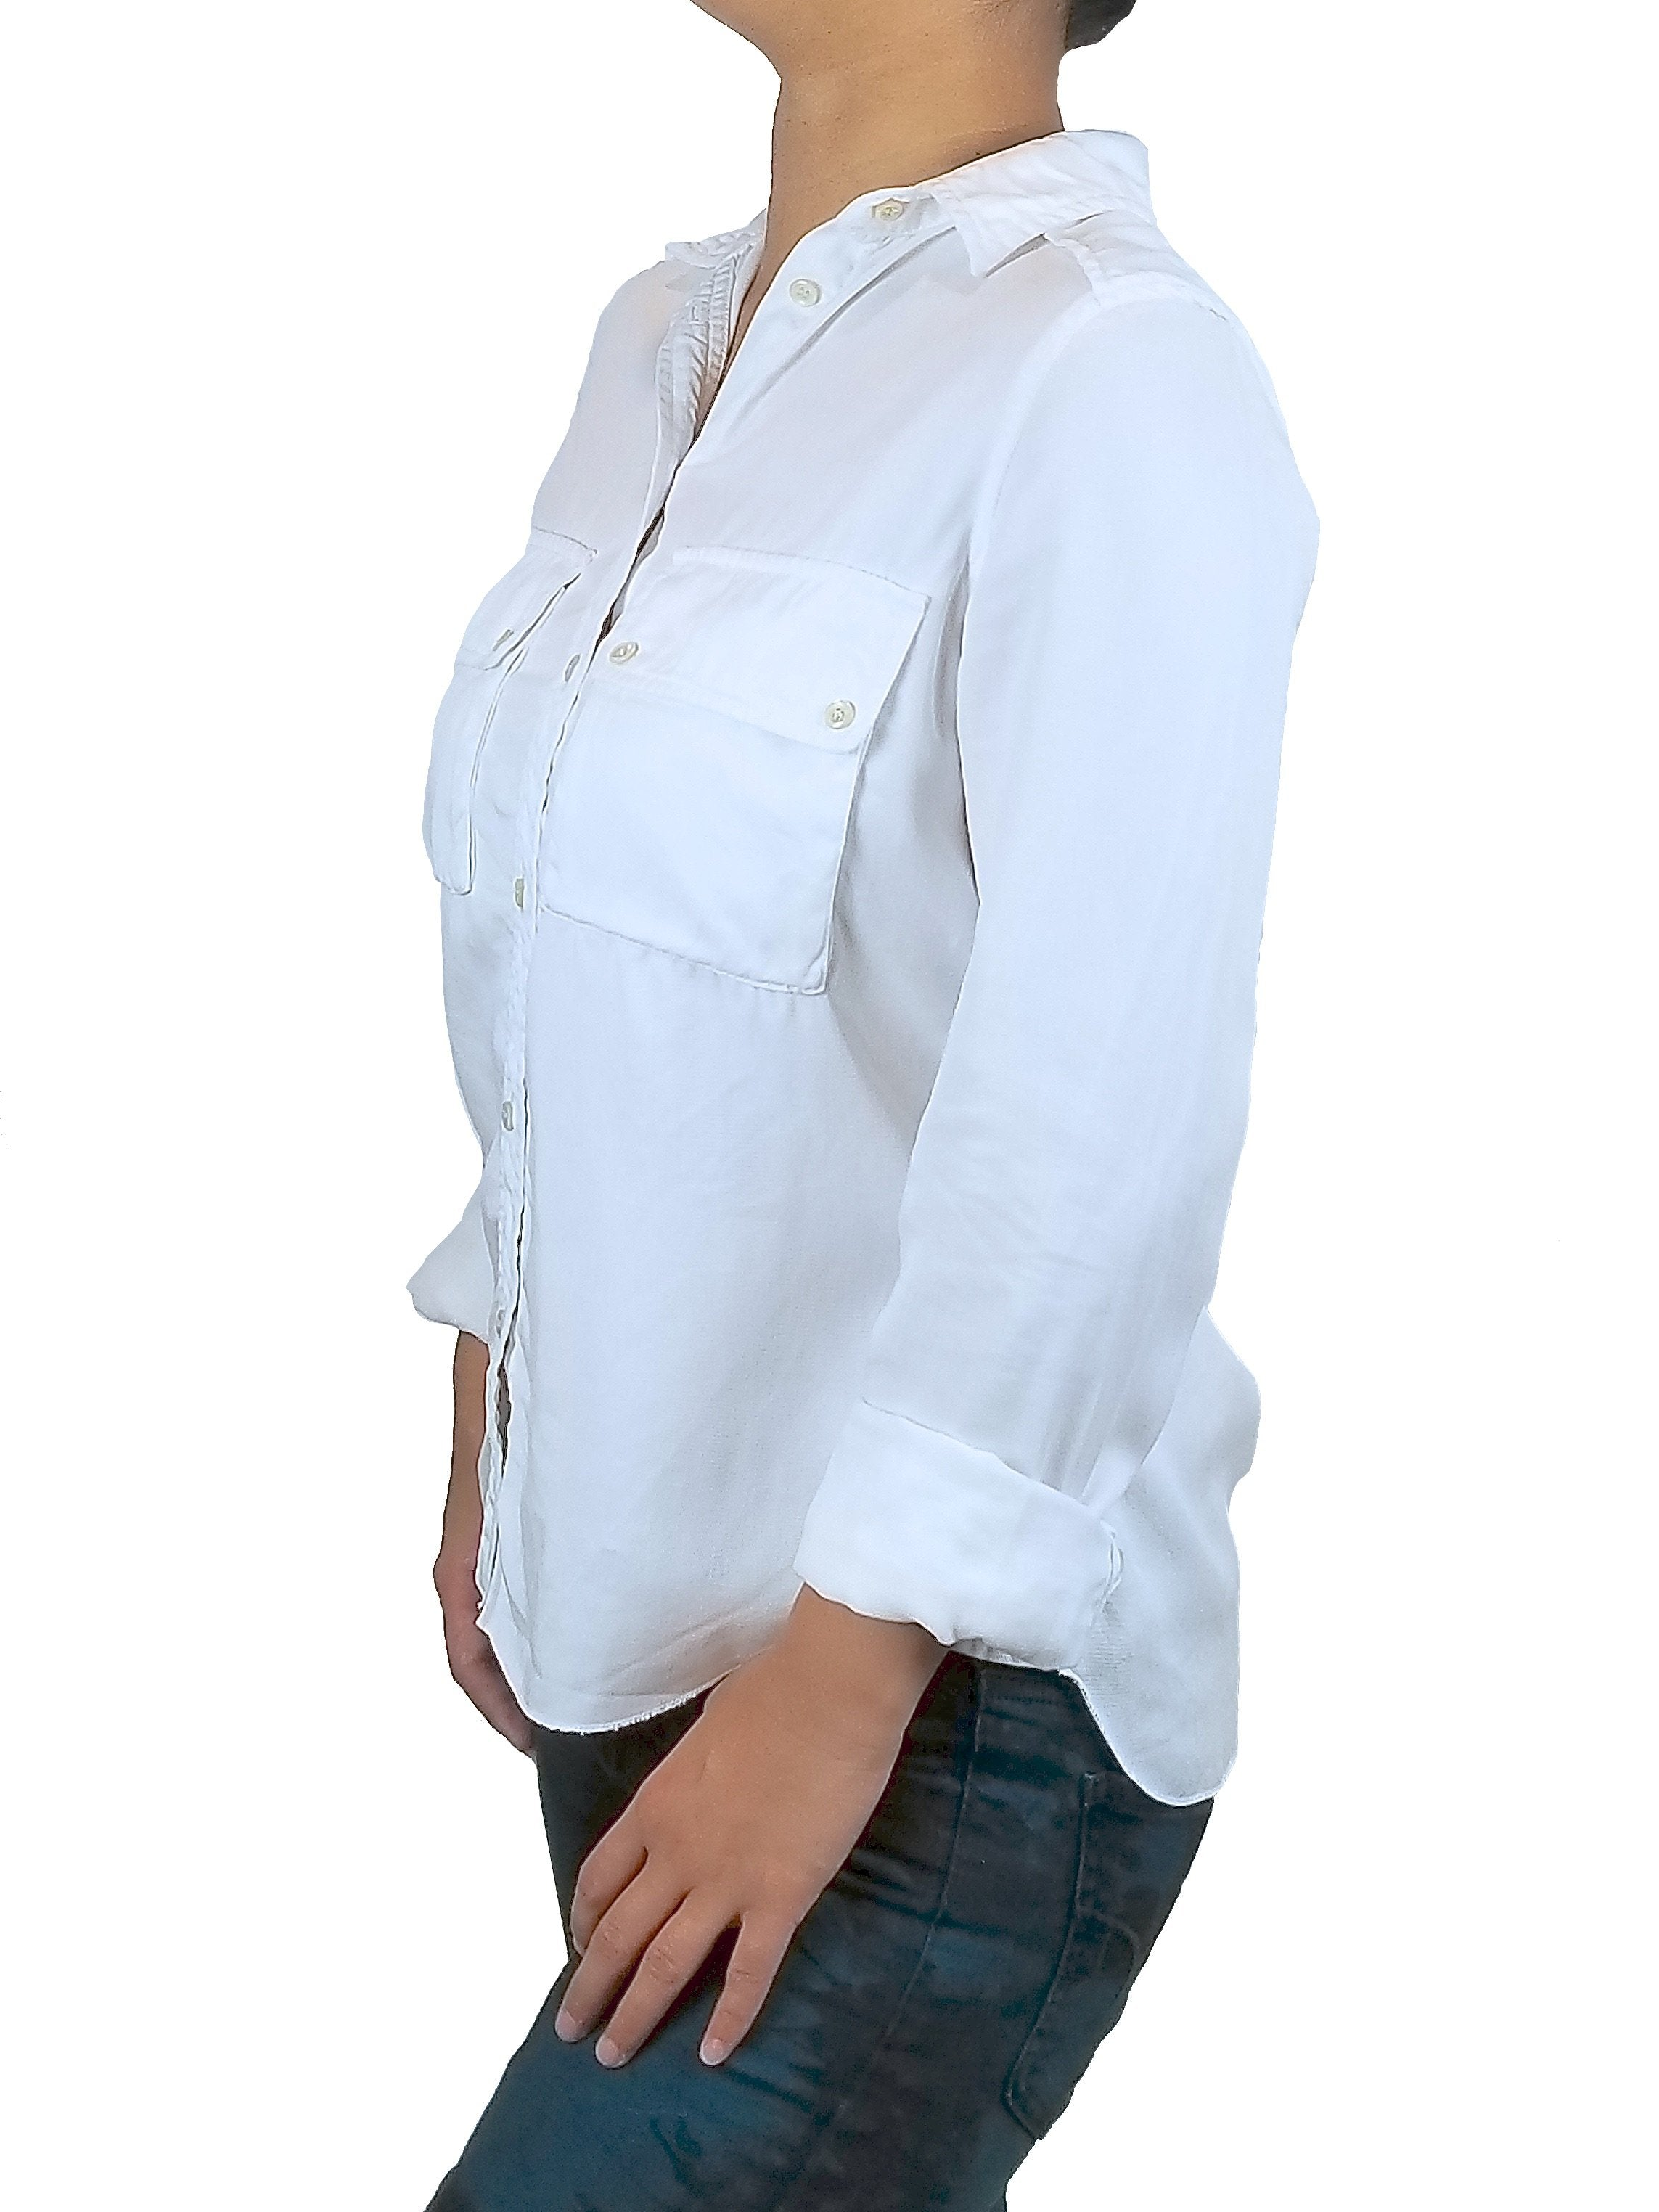 Wilfred Women's casual button-down shirt, Stylish and relaxed shirt, silhouette in biodegradable material. It doesn't get better than this timeless button down., White, 100% Lyocell, Women's casual shirt, women's shirt with lyocell material, women's white shirt with biodegradable material, women's white button down shirt, women's white button up shirt, featured, eco fashion with sustainable material